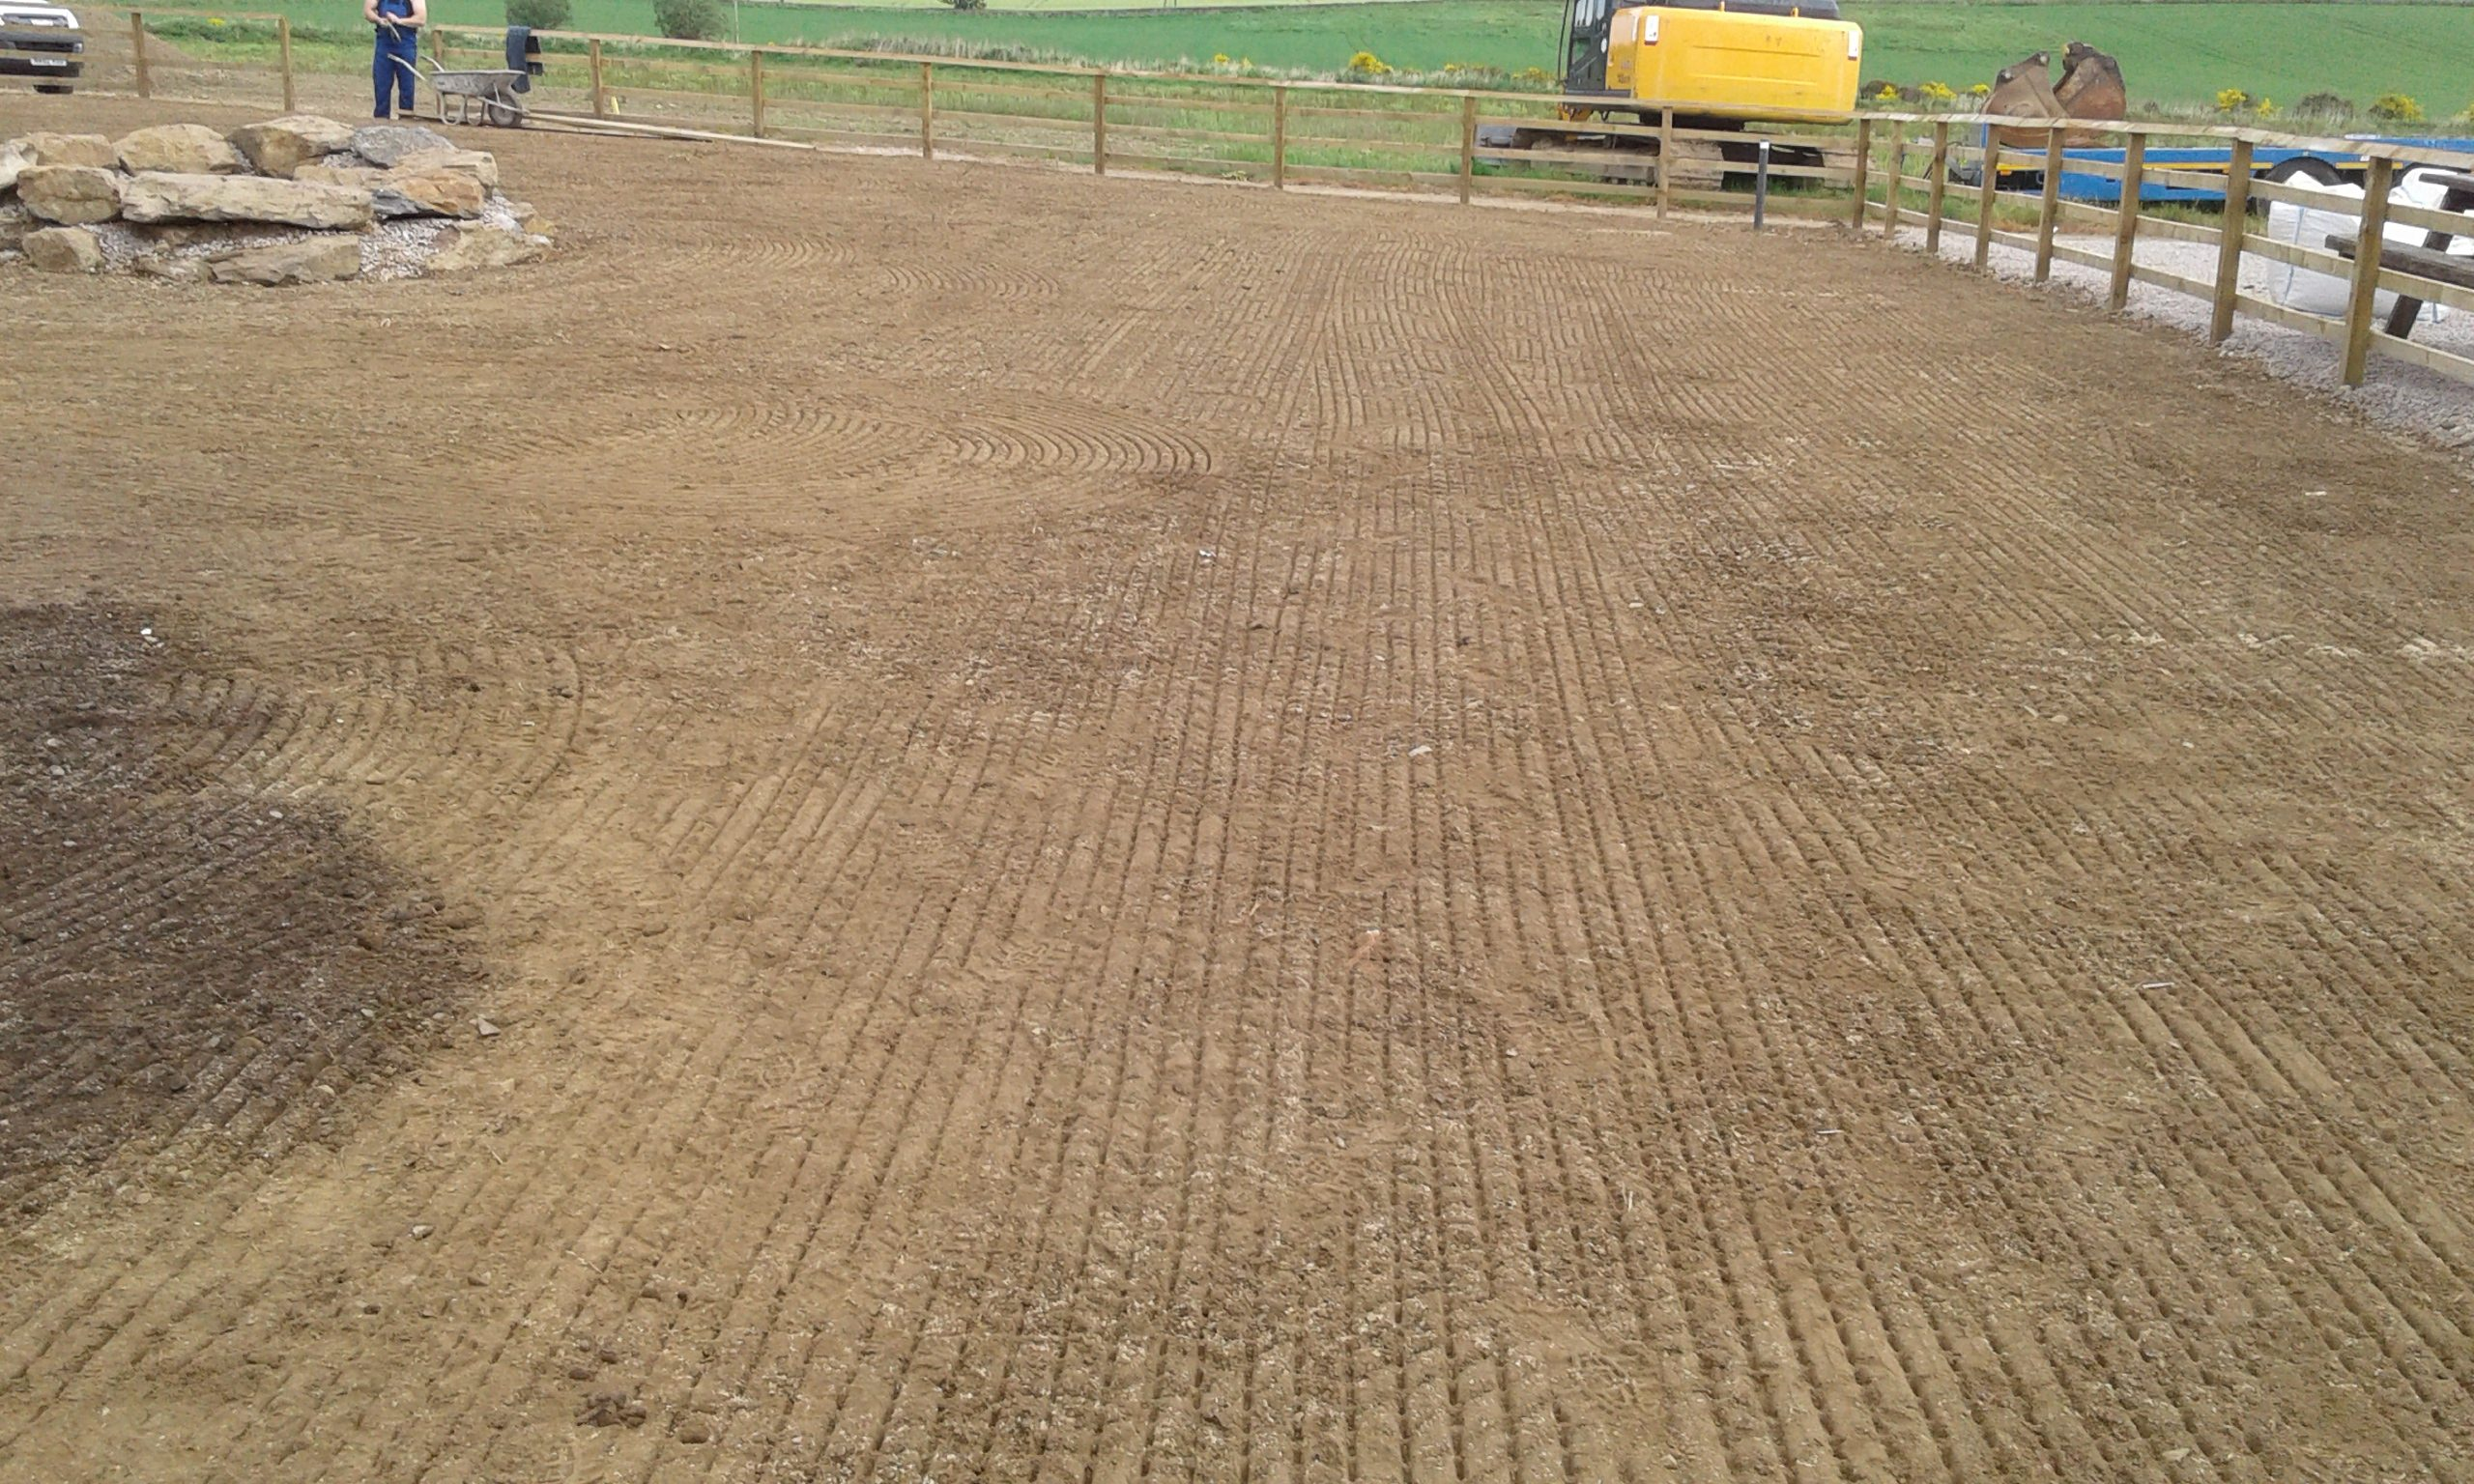 Seeded and consolidated with roller.